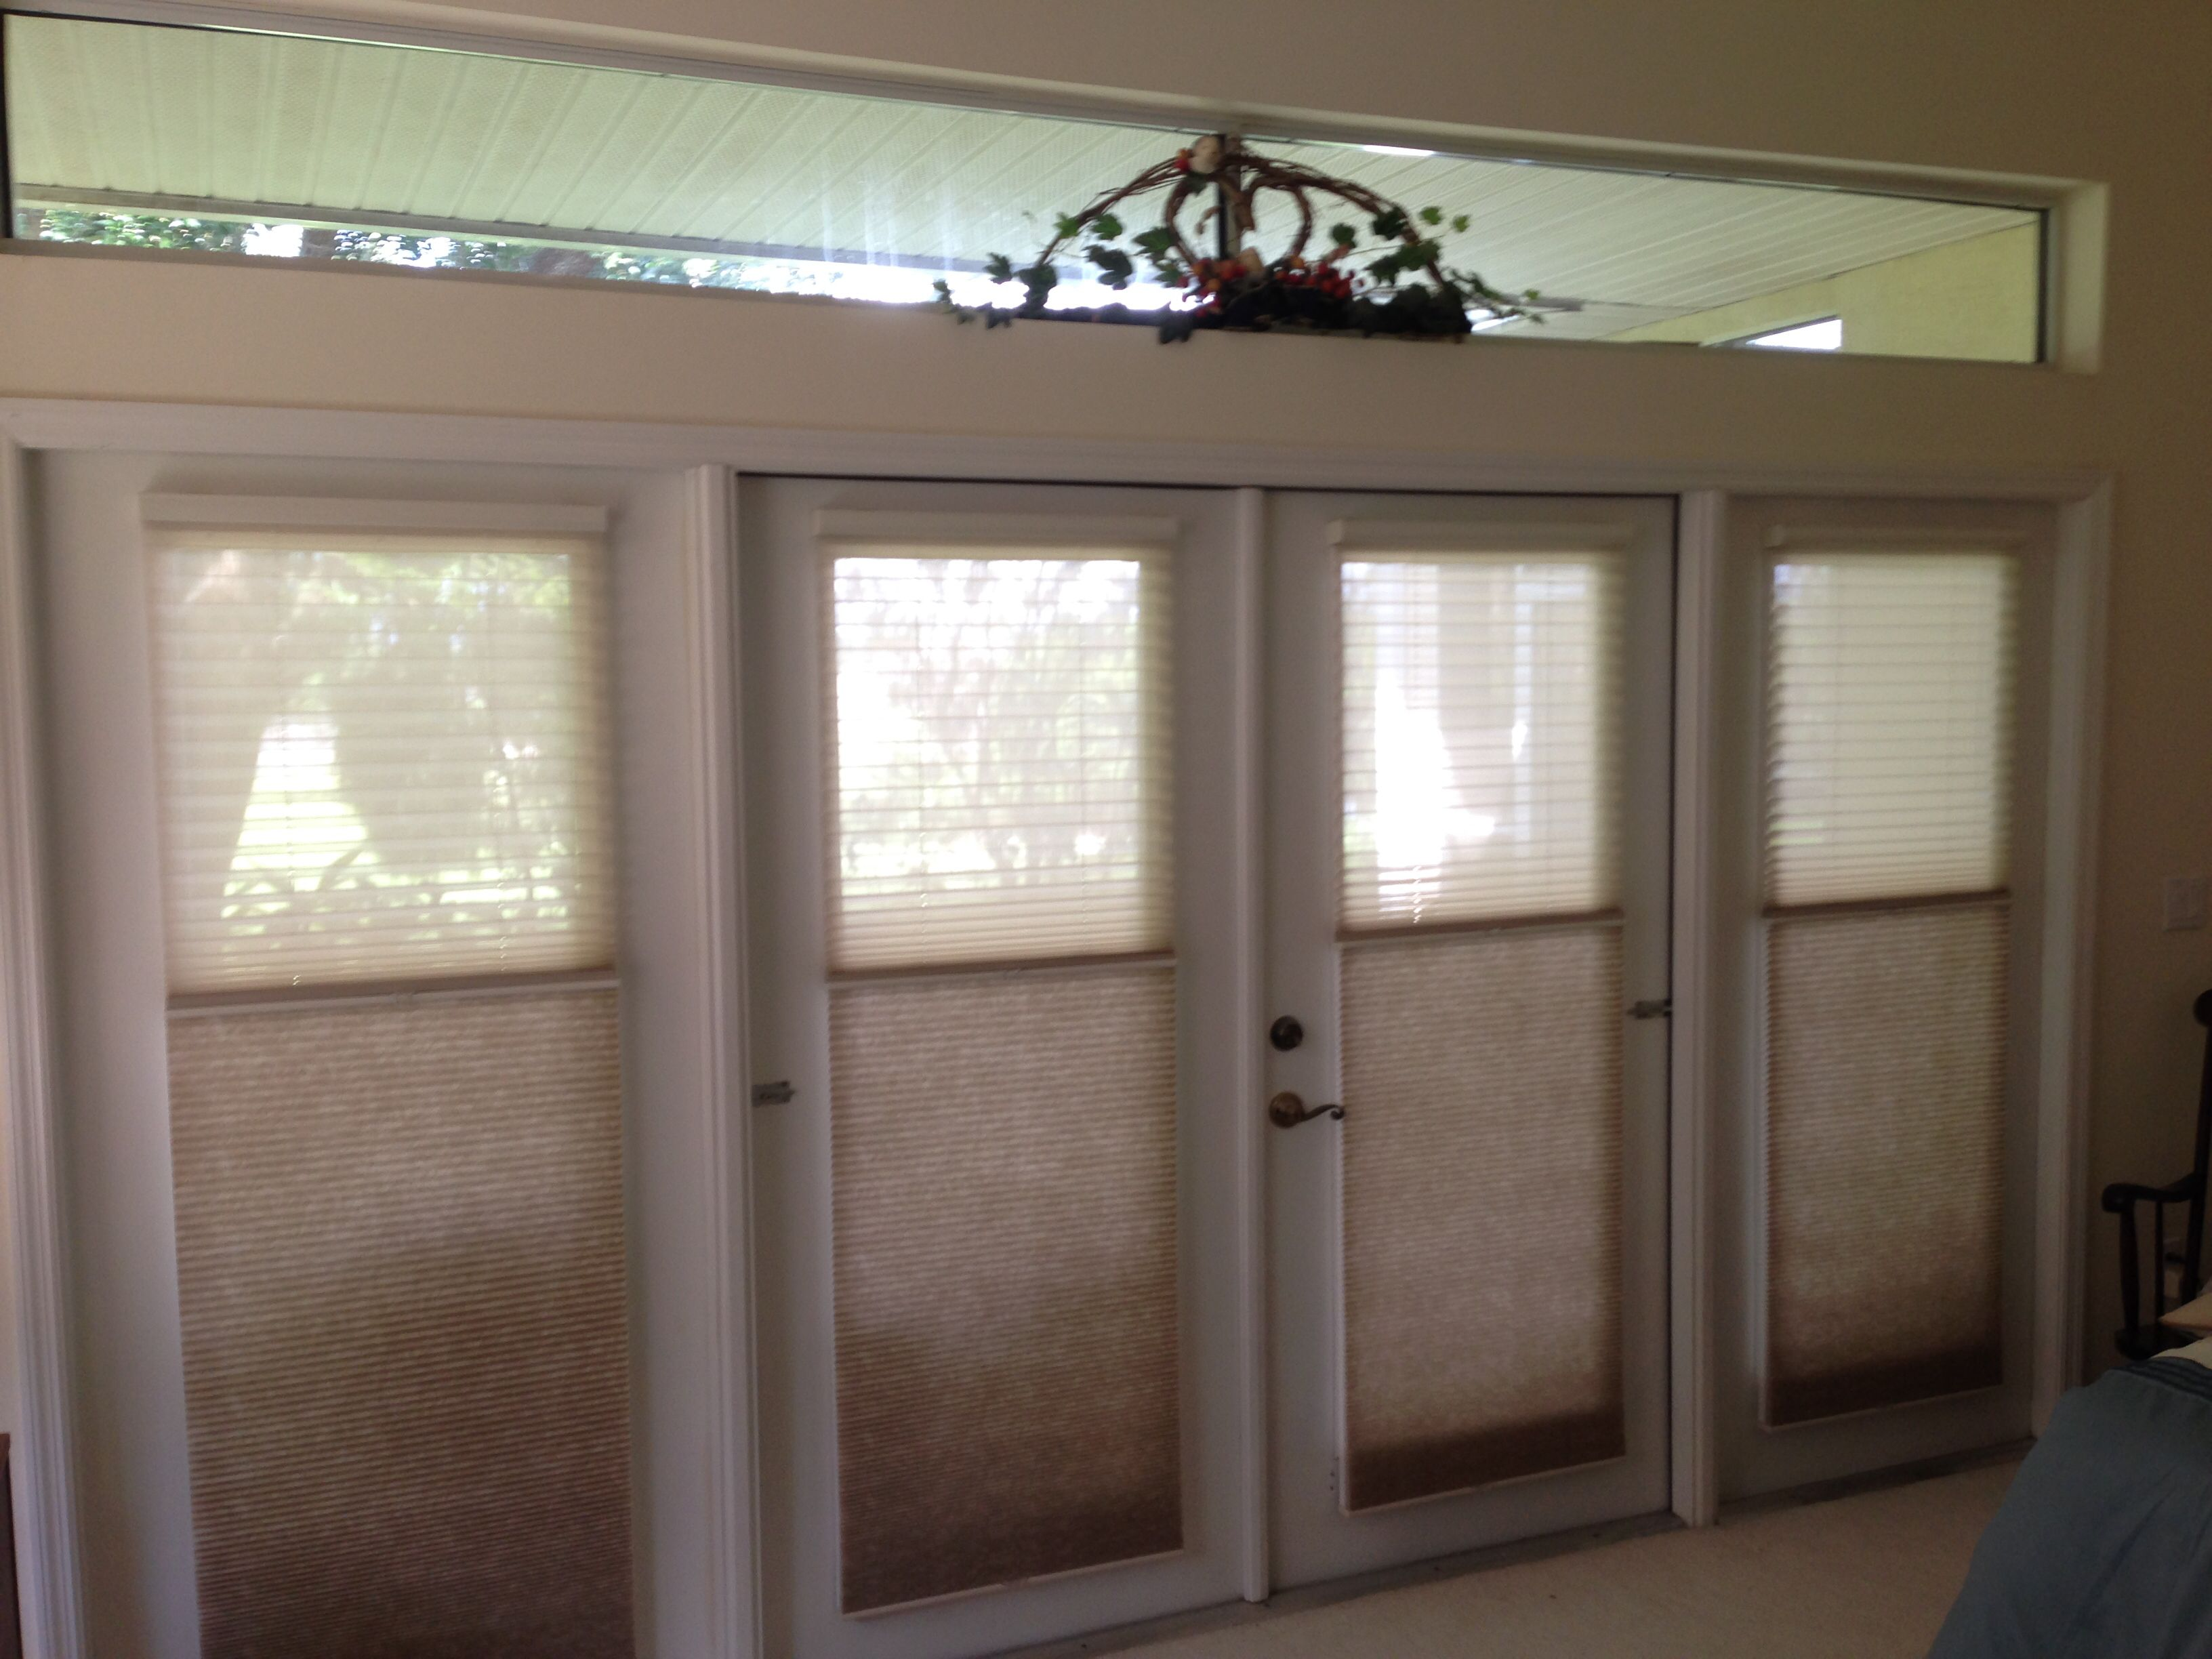 light filtering galleryimages honeycombs galleryitems honeycomb blinds cellular angled standard